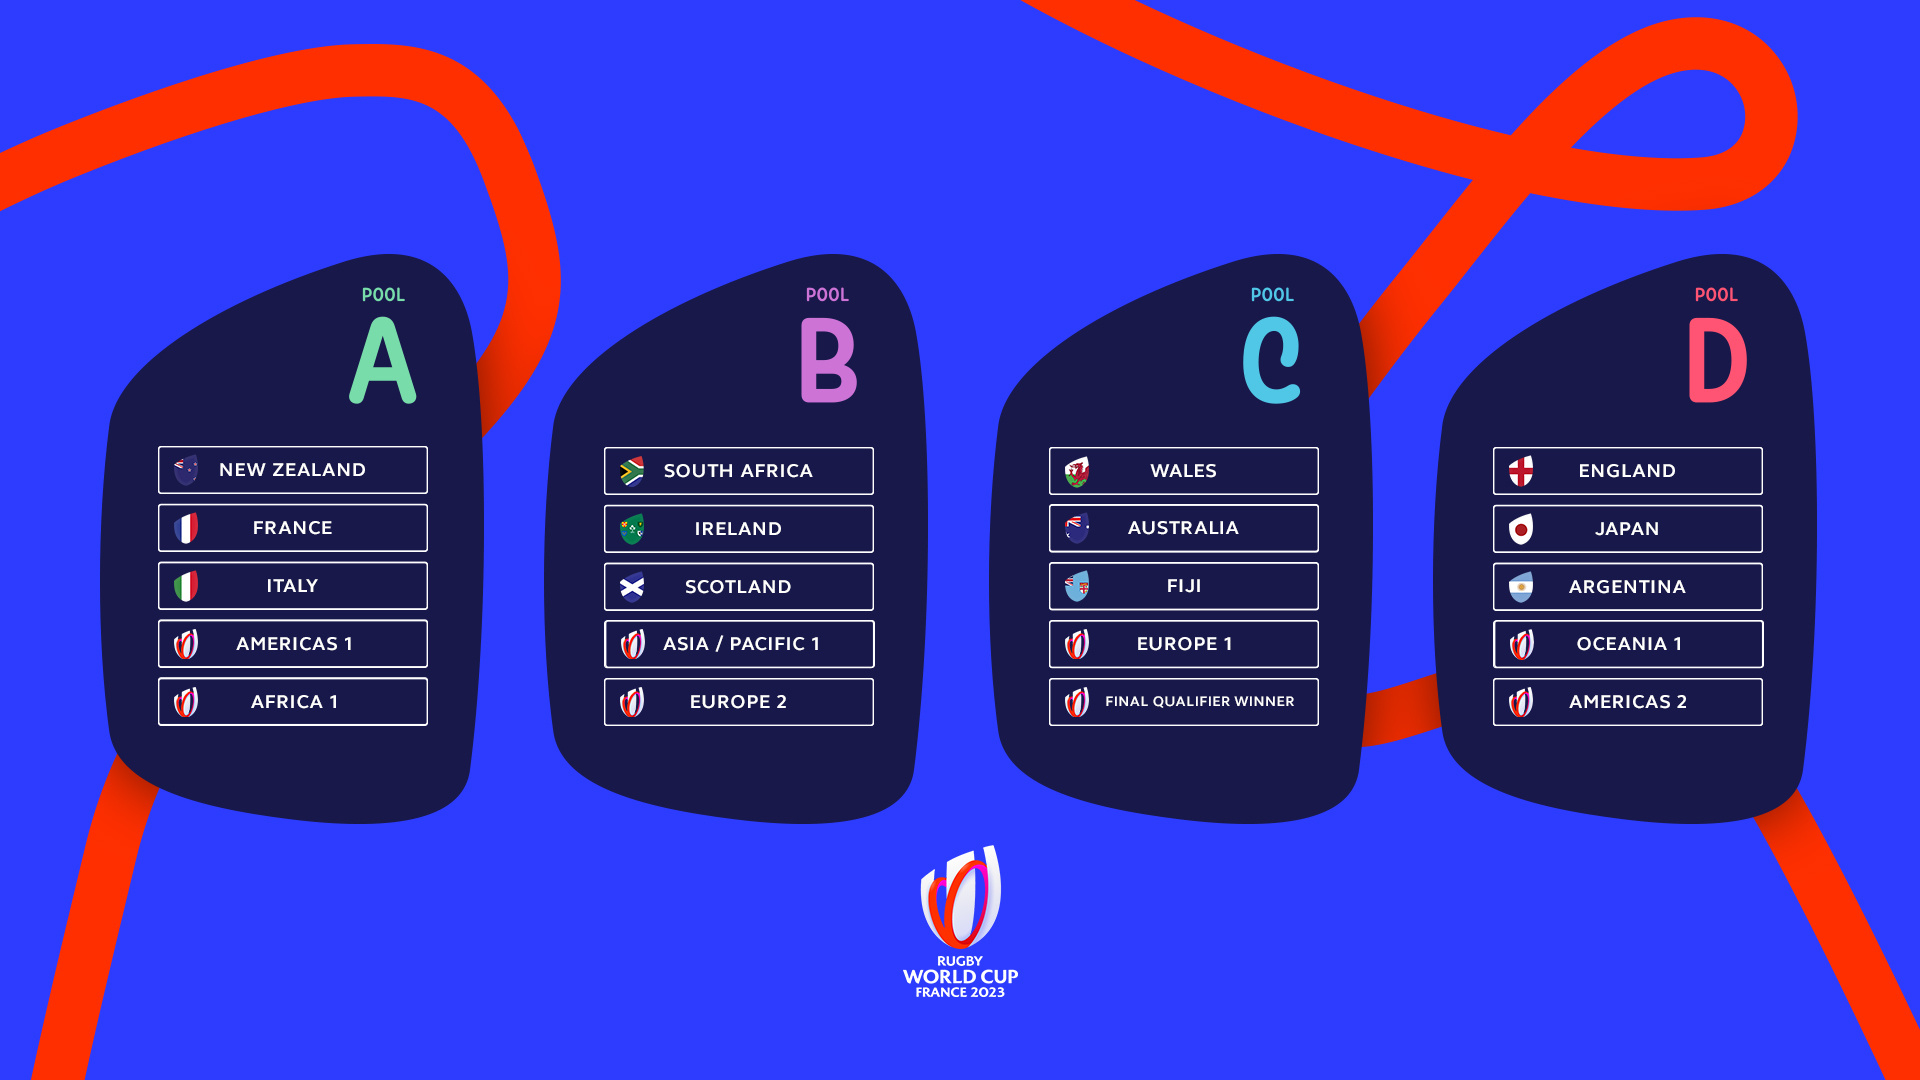 Jrfu Reaction To Rugby World Cup 2023